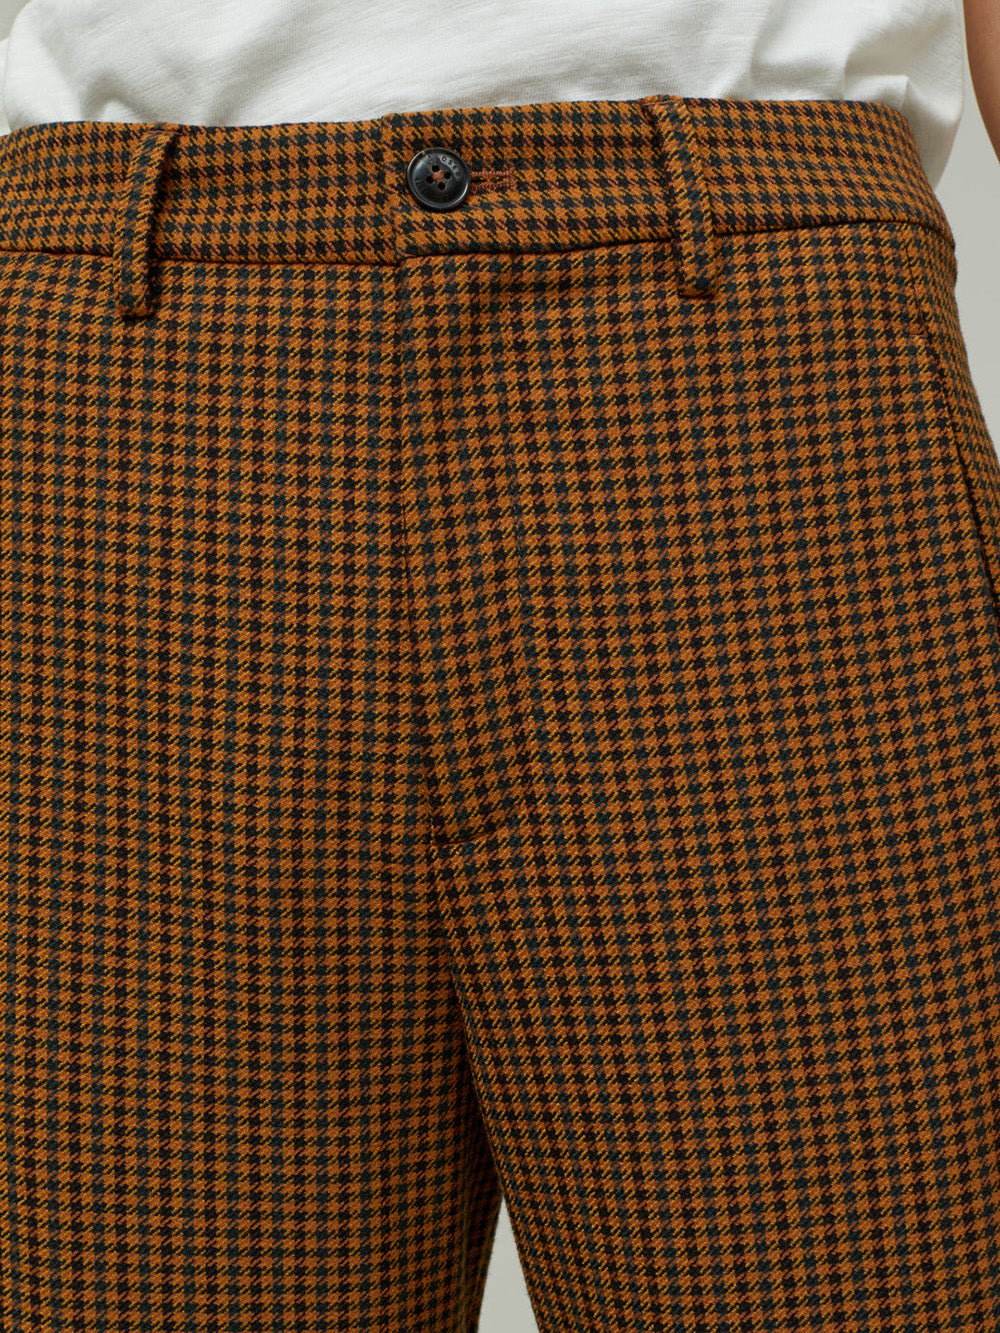 closed ludwig pant in pumpkin